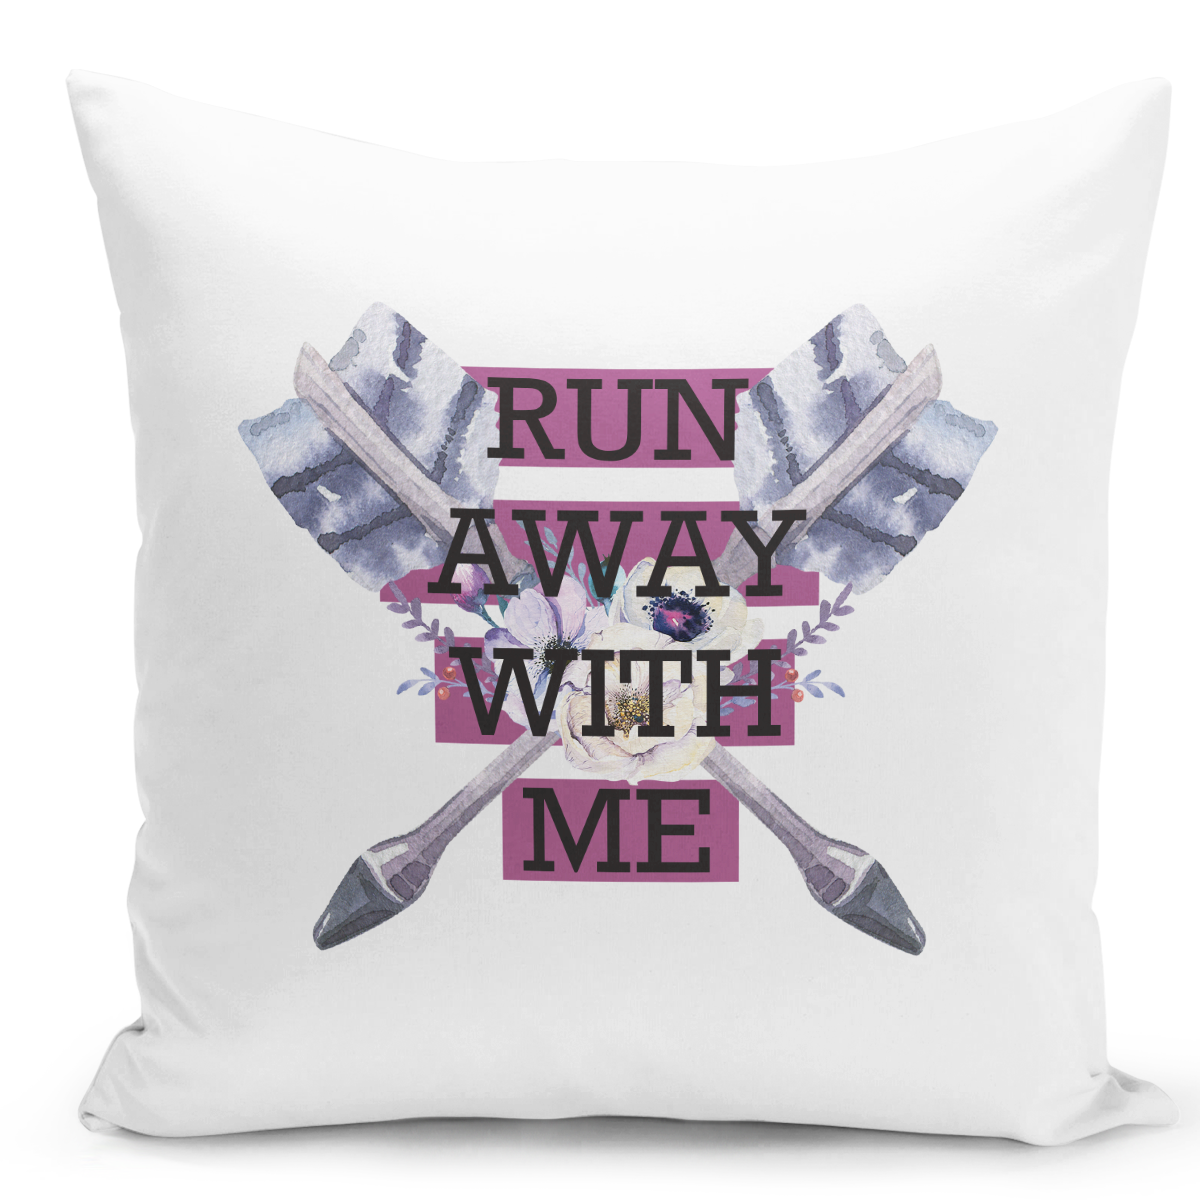 White-Throw-Pillow-Run-Away-With-Me-Feather-Arrow-Pillow---High-Quality-White-16-x-16-inch-Square-Home-Office-Decor-Accent-Pillow-